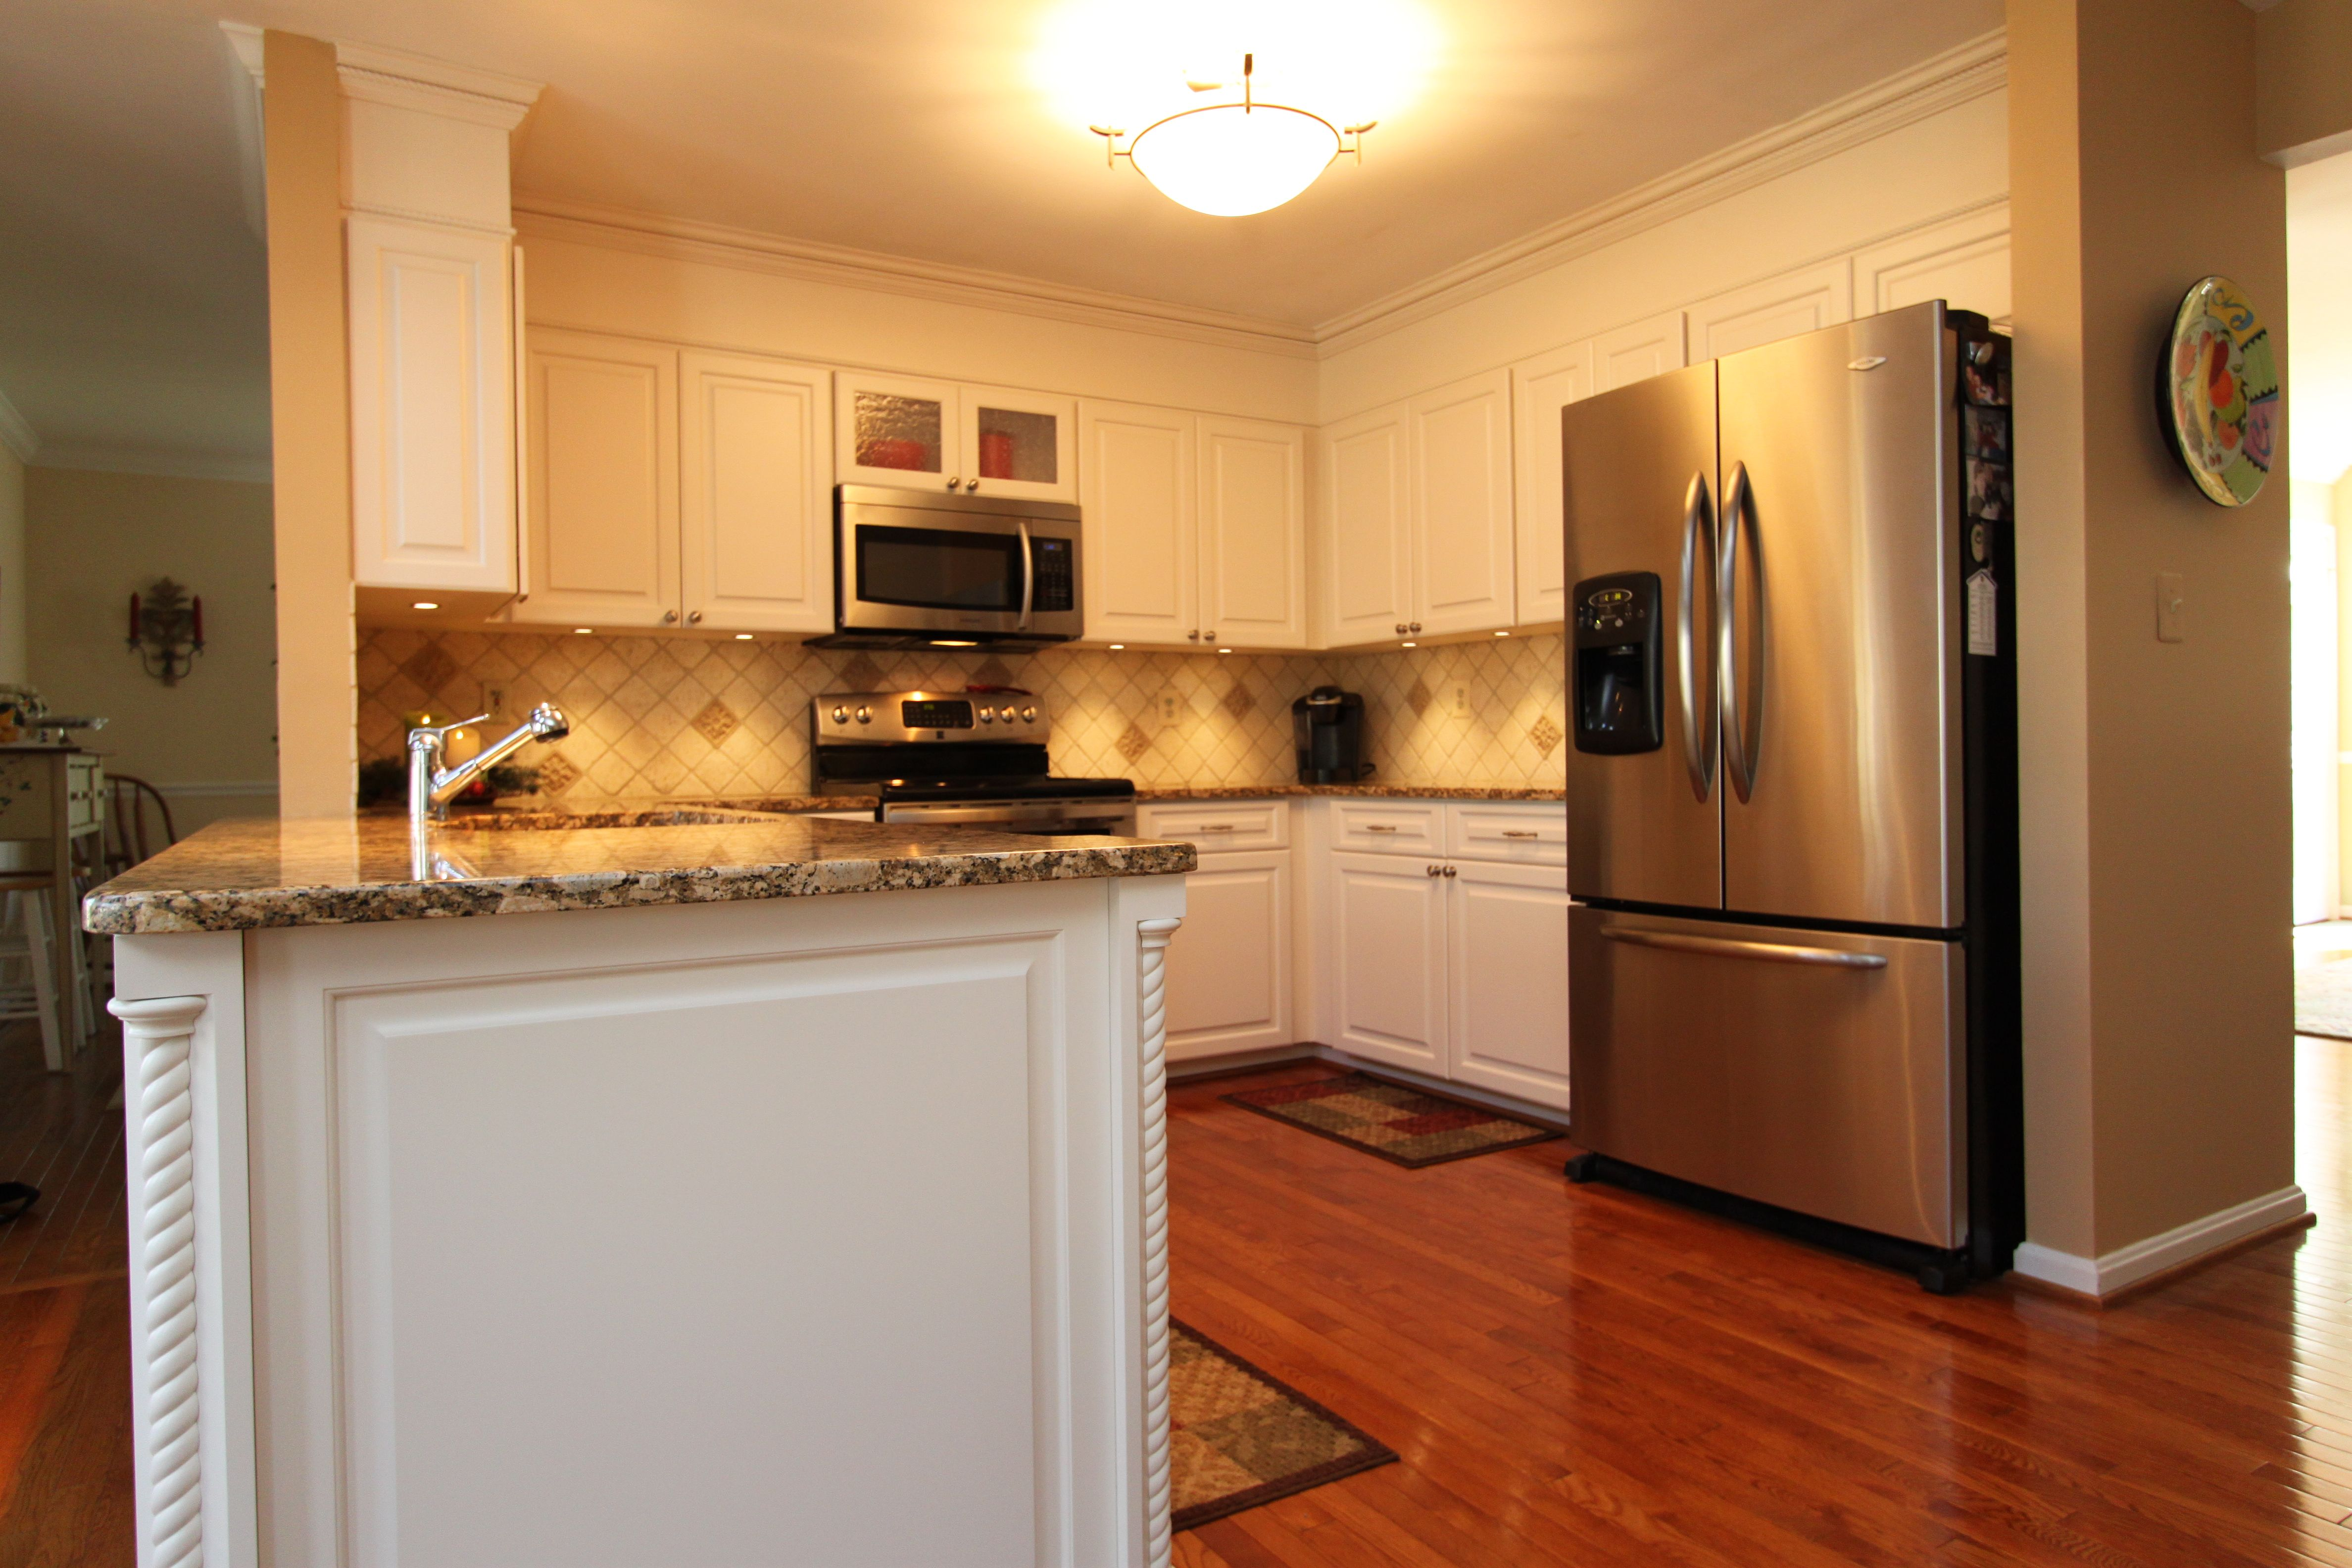 transitional style white kitchen with tan granite countertops in